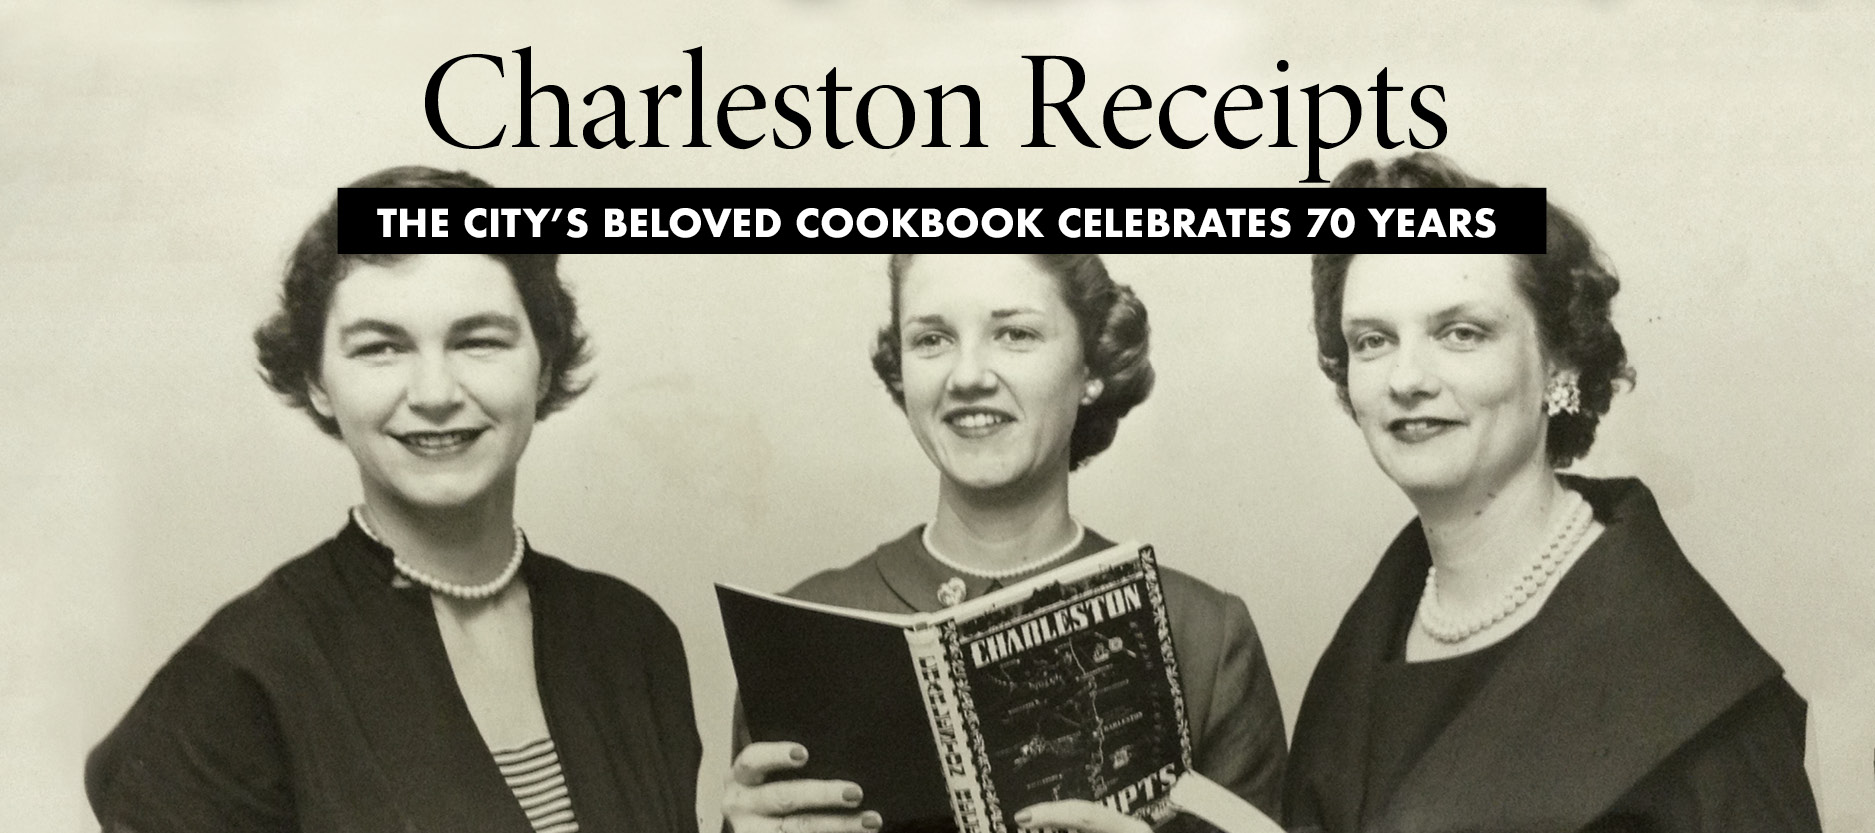 Flashback on Charleston Receipts